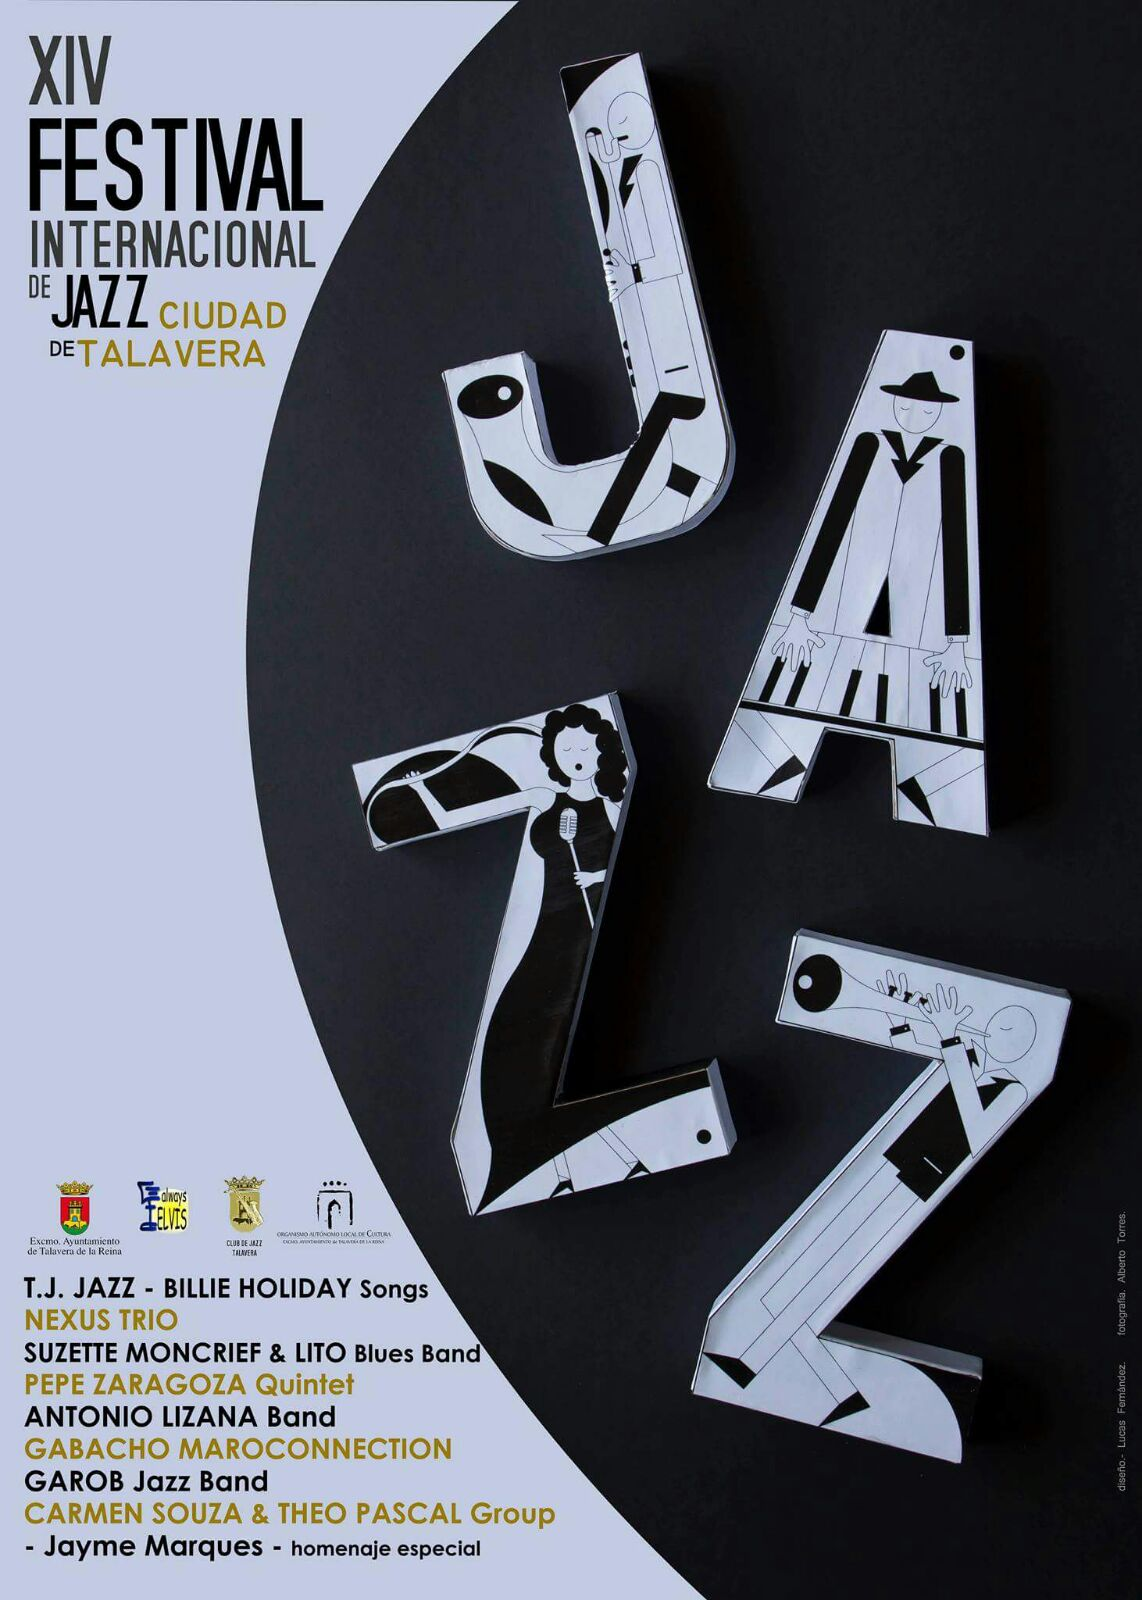 Cartel xiv Festival Jazz Cuidad Talaveraa 2016 Lito Blues Band